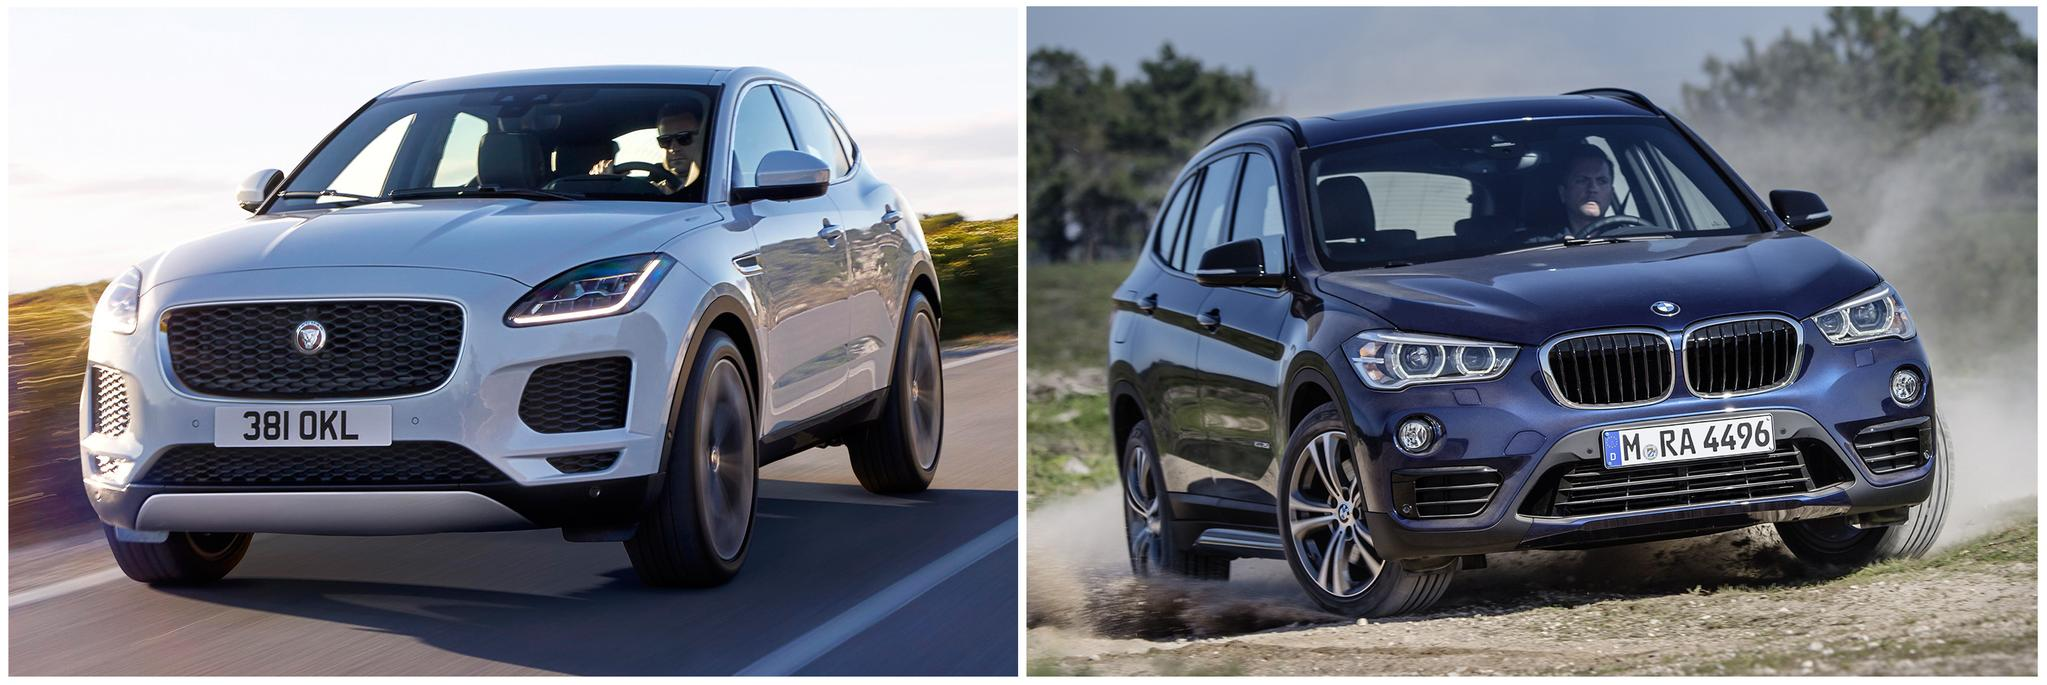 New Jaguar E-Pace vs BMW X1